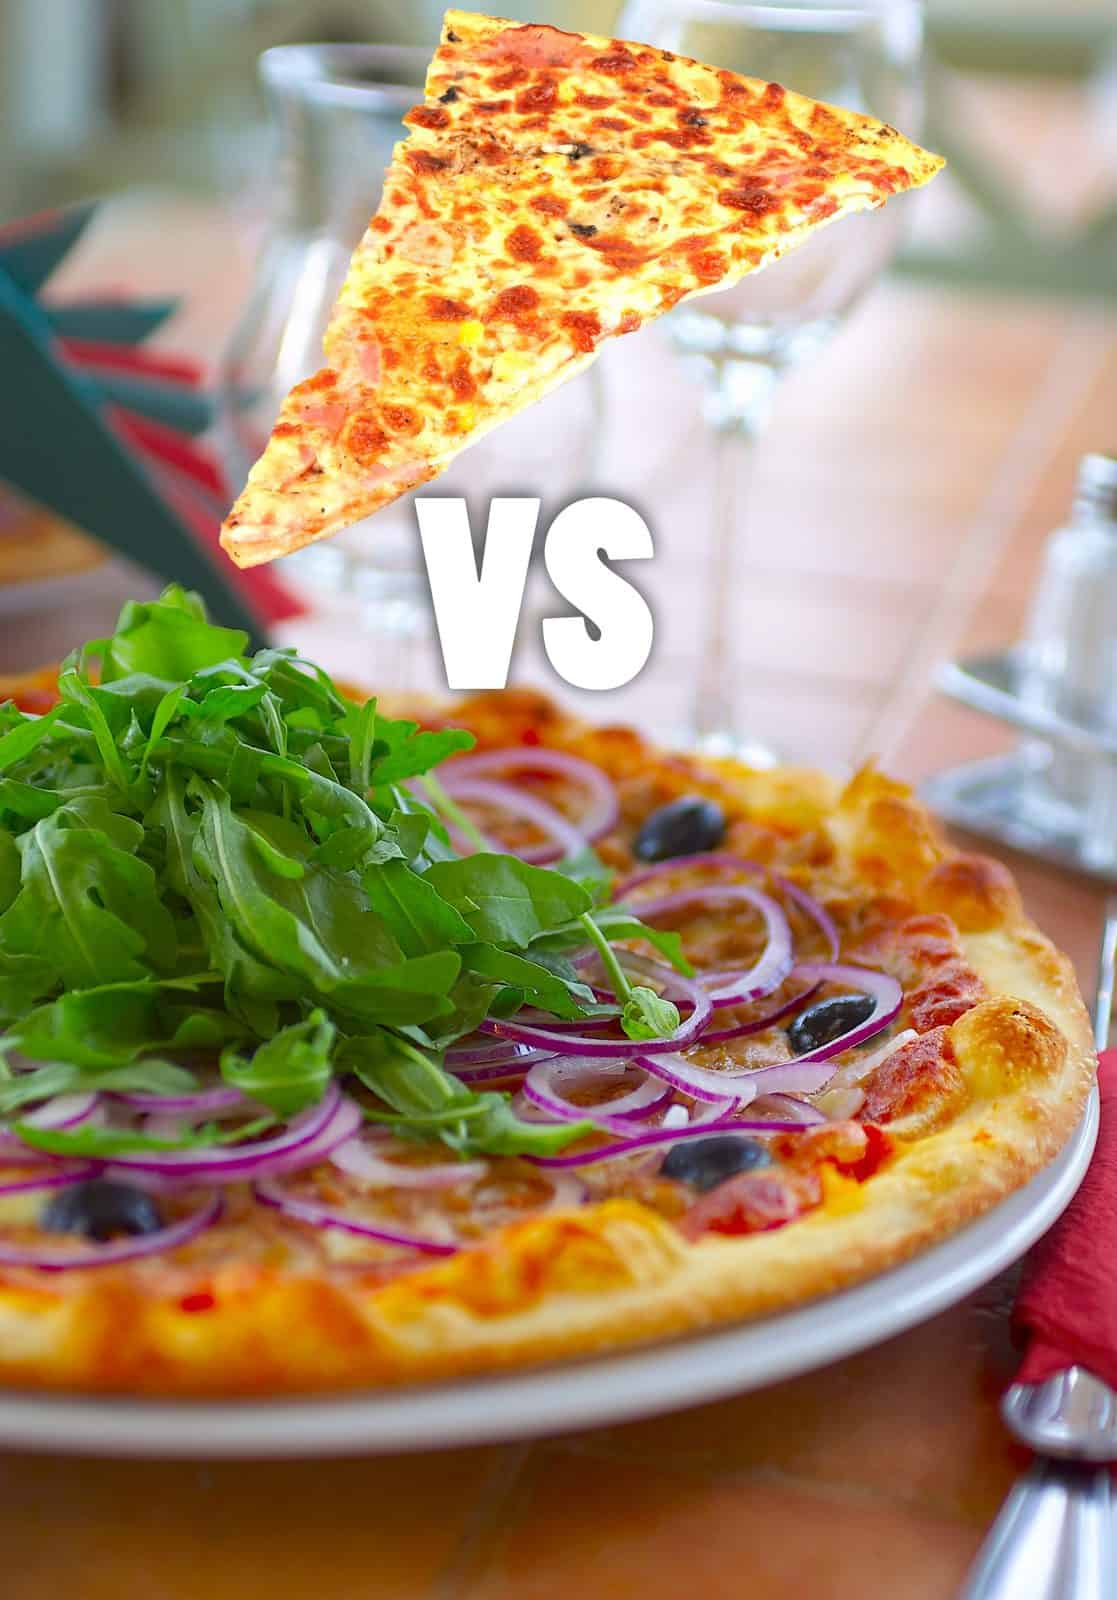 cheap pizza vs expensive pizza